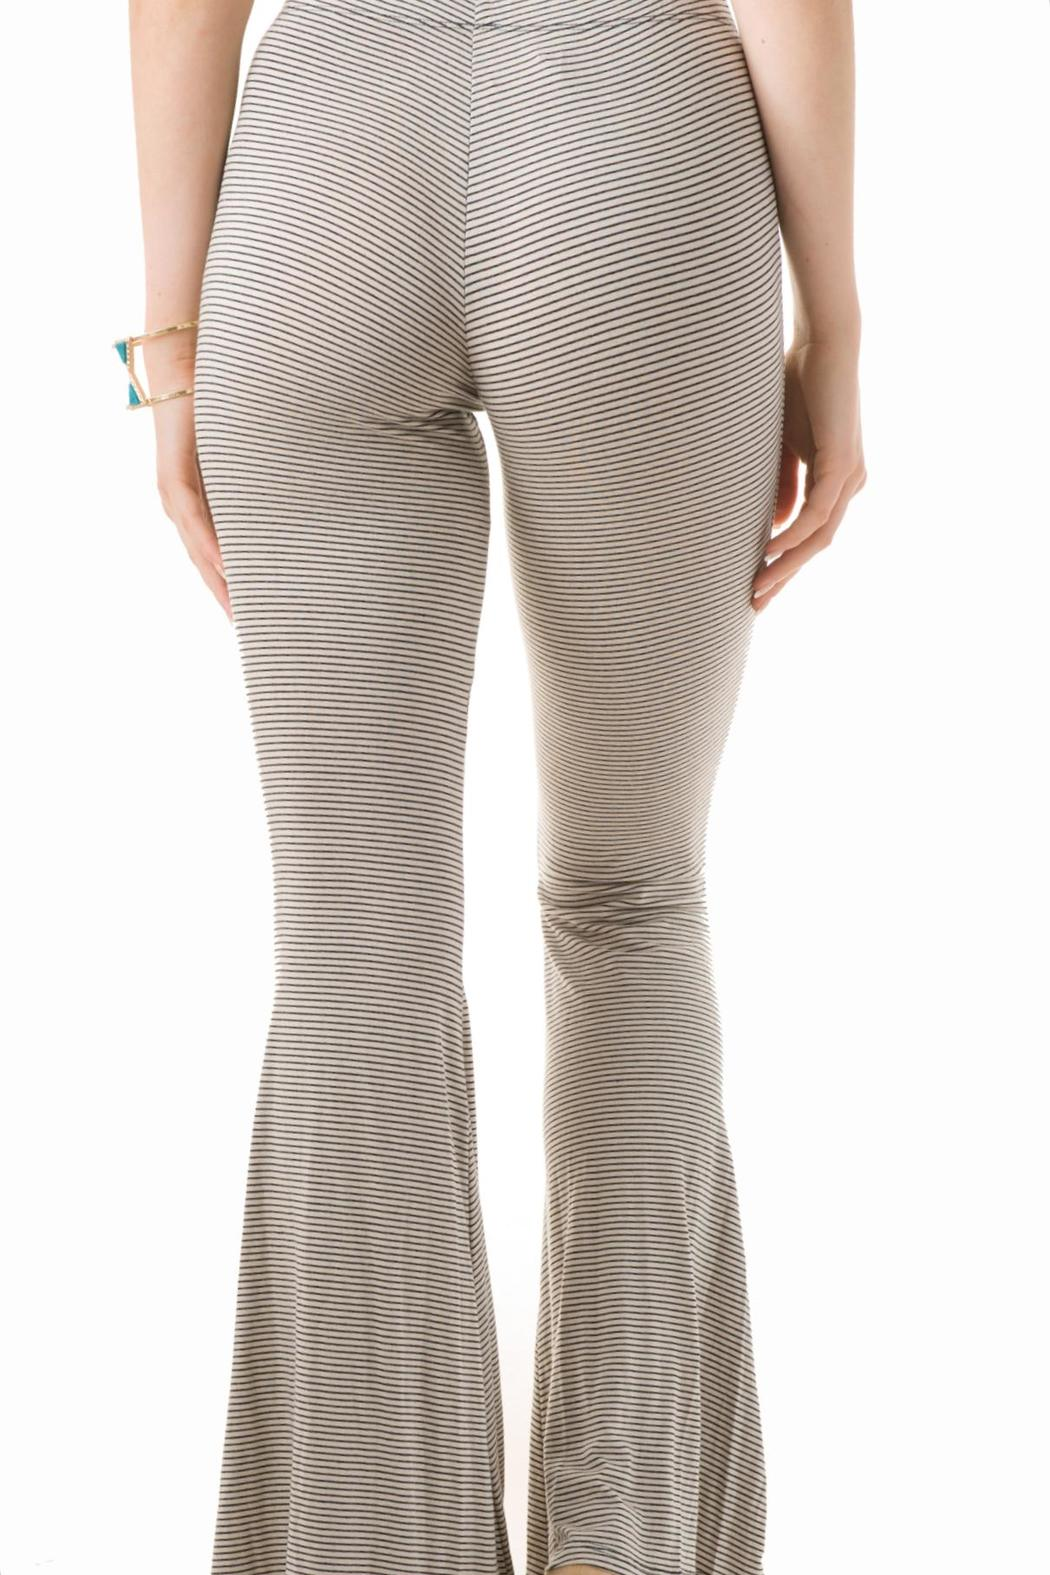 J Bee Boutique Striped Bell Bottoms from California ...